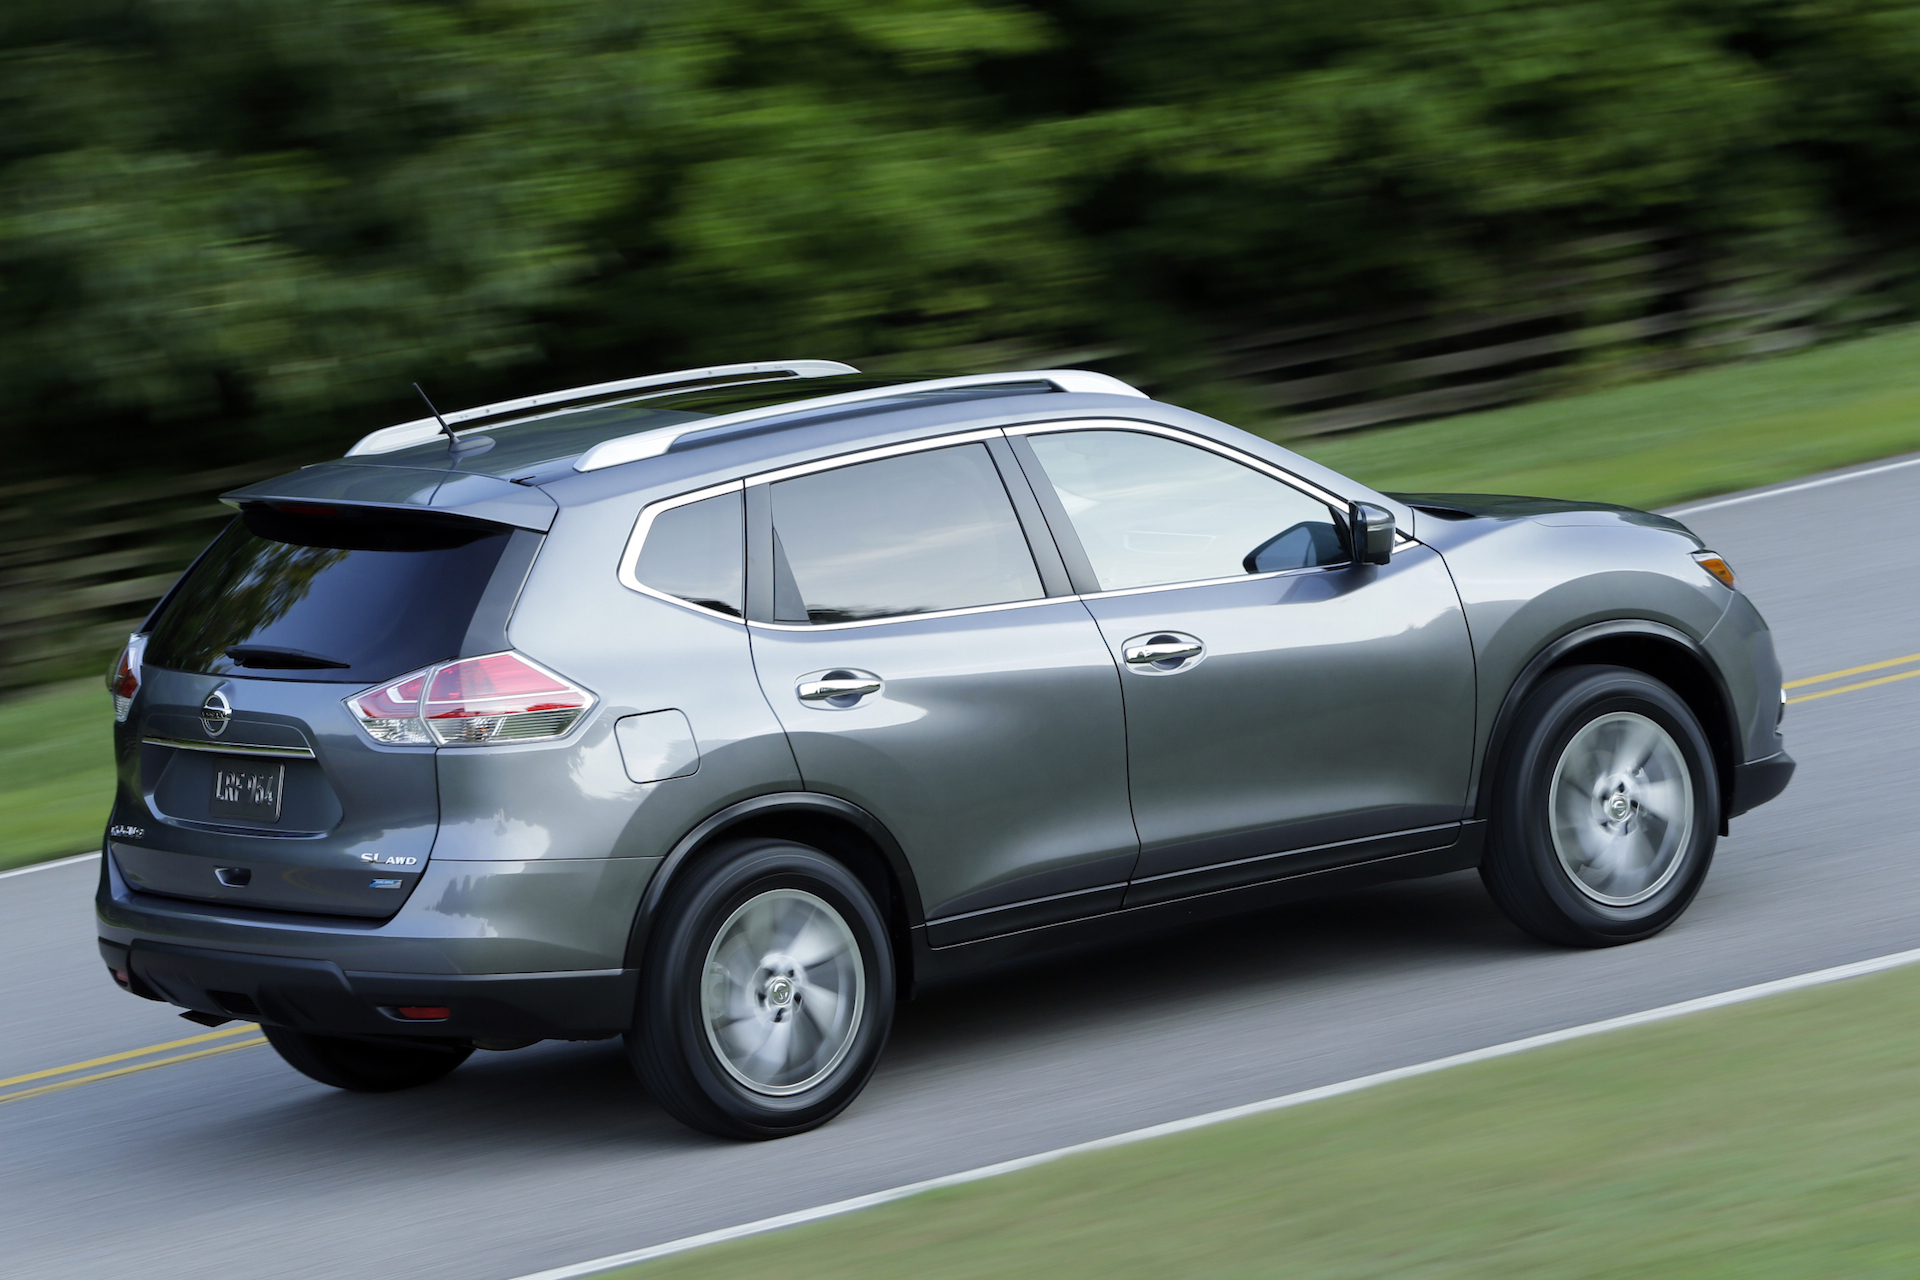 Subaru Kansas City >> 2015 Nissan Rogue Review, Ratings, Specs, Prices, and Photos - The Car Connection